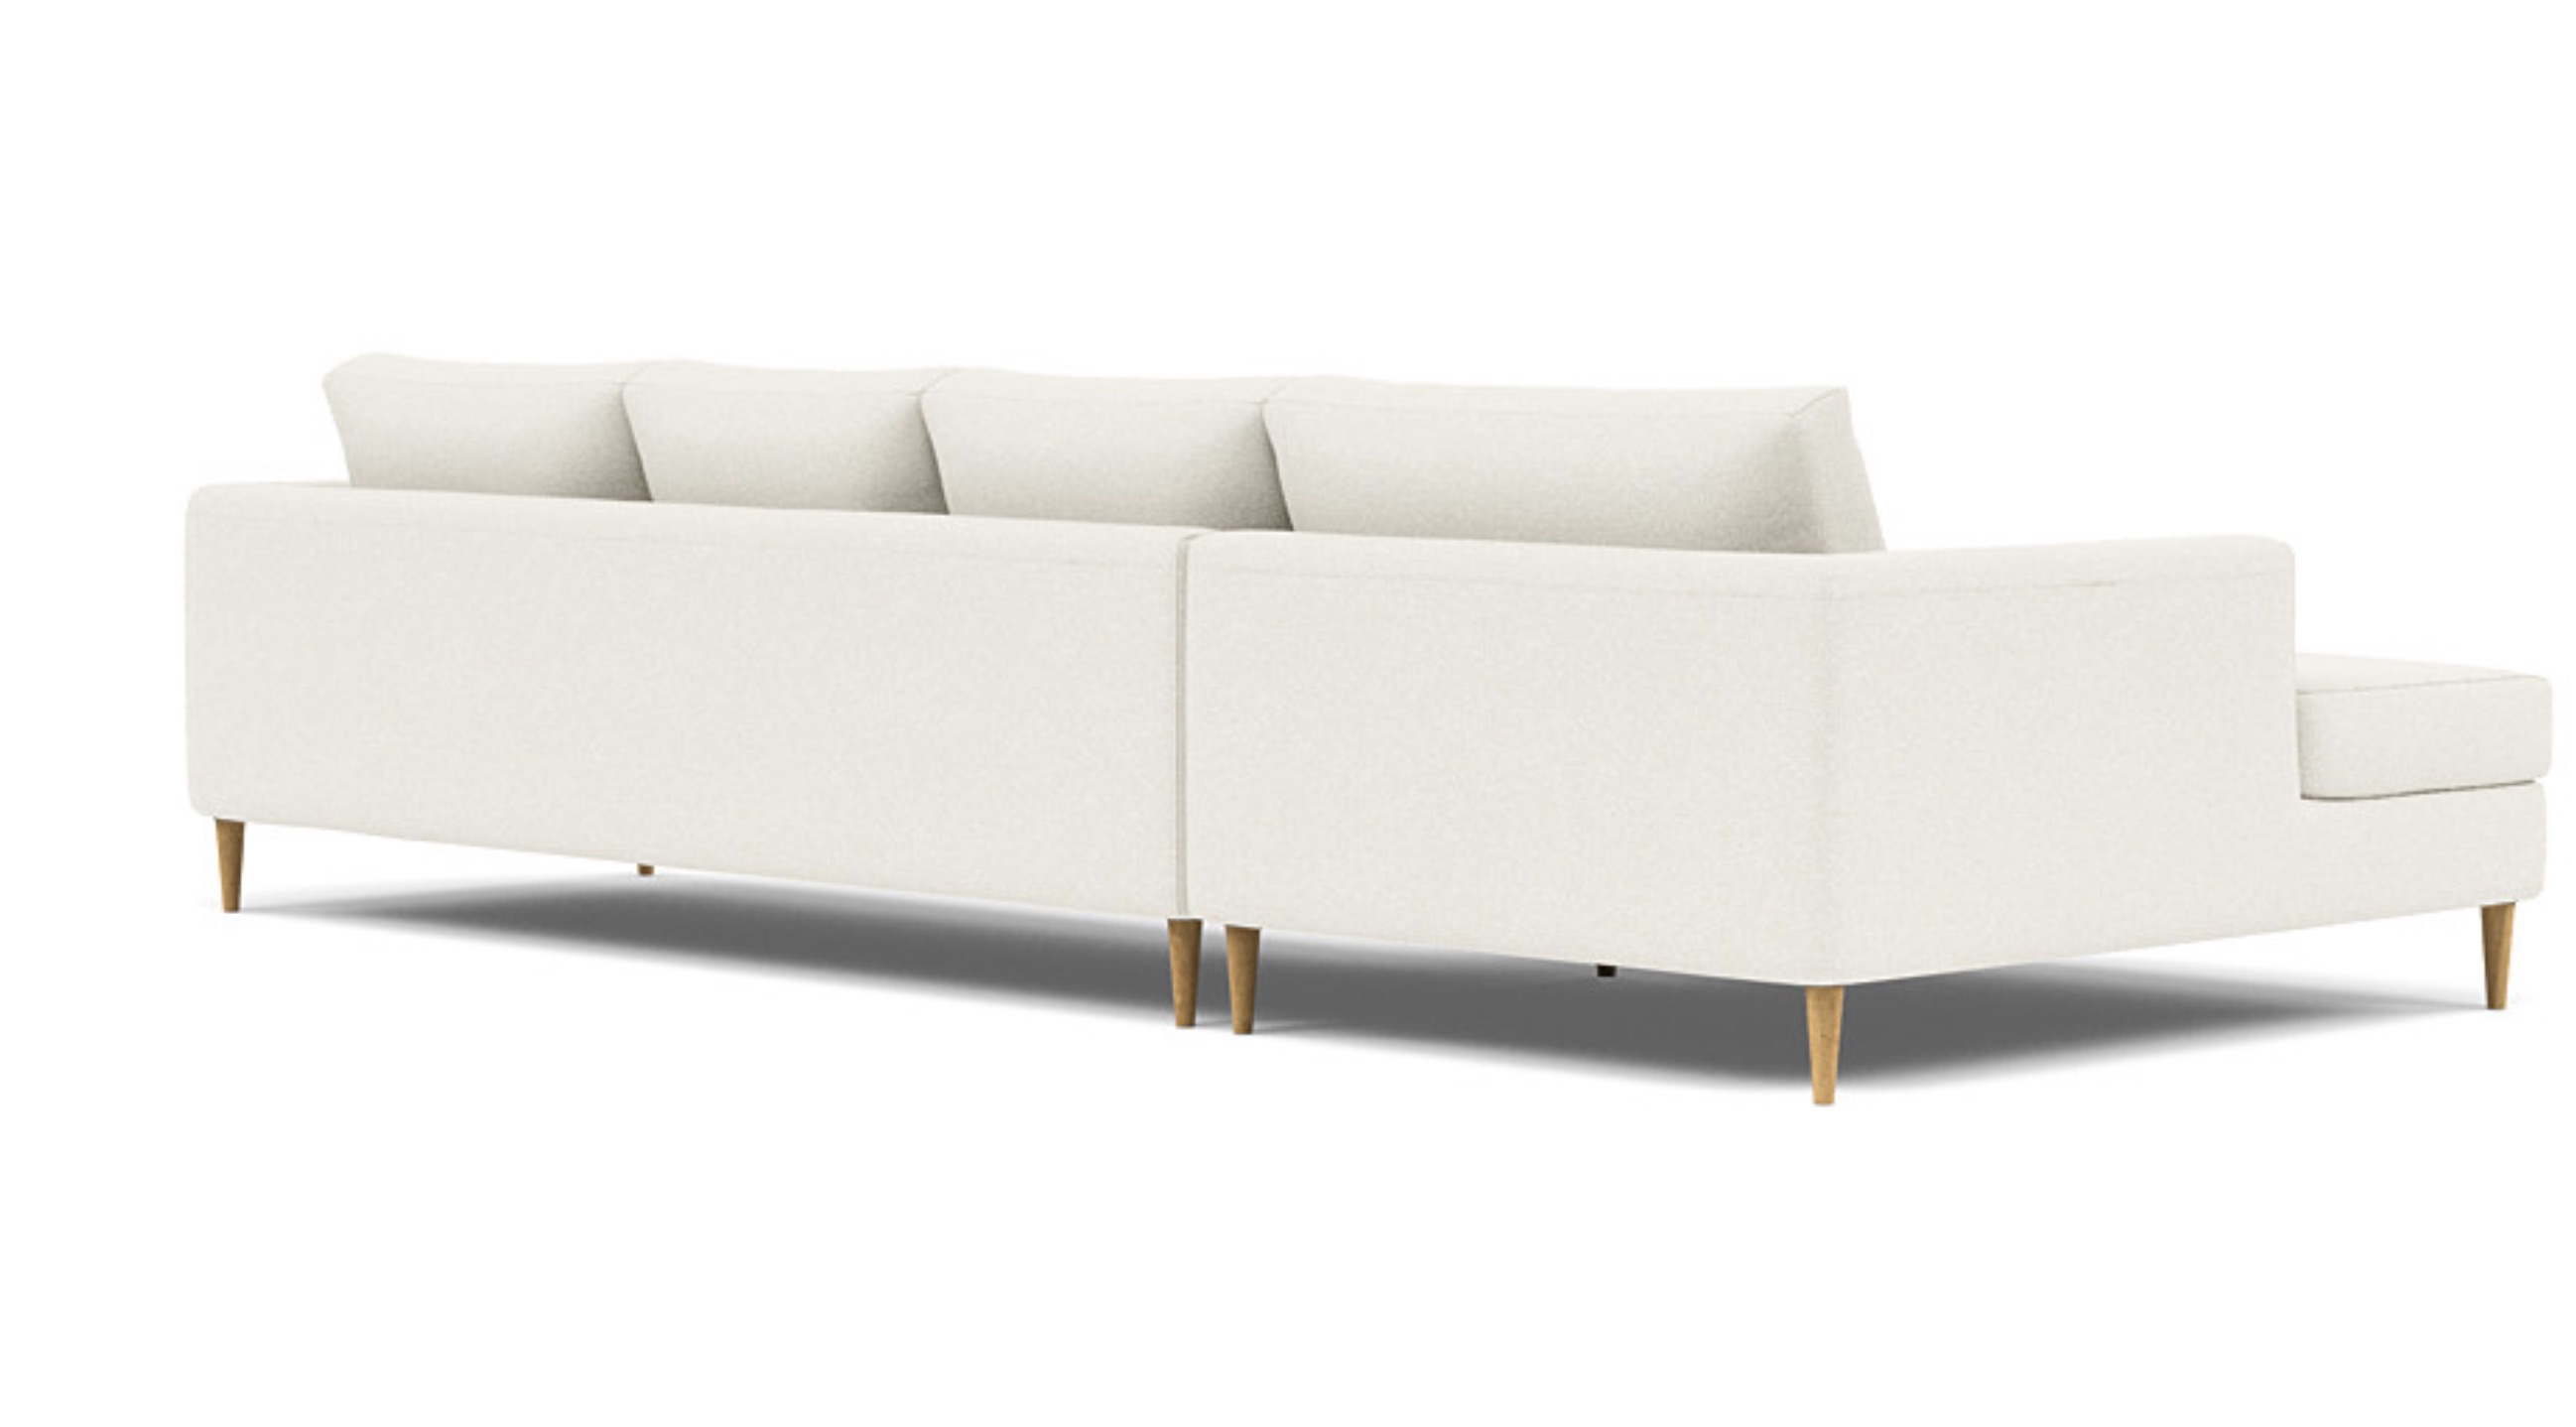 Asher 4-Seat Left Chaise Sectional, Kid/Pet Friendly Fabric